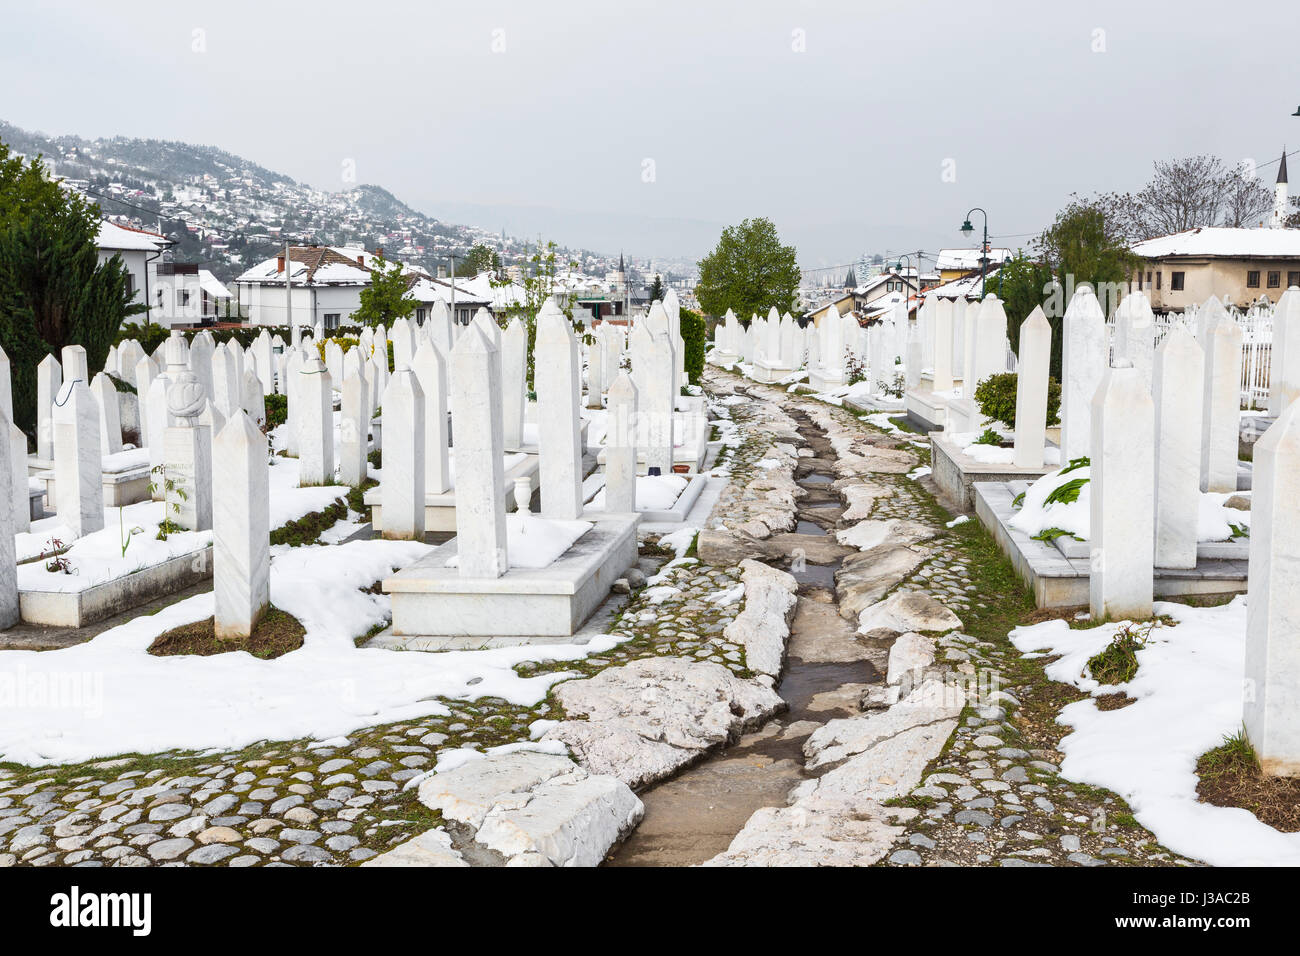 A muslim cemetery in a beautiful winter day in Sarajevo, Bosnia and Herzegovina. - Stock Image